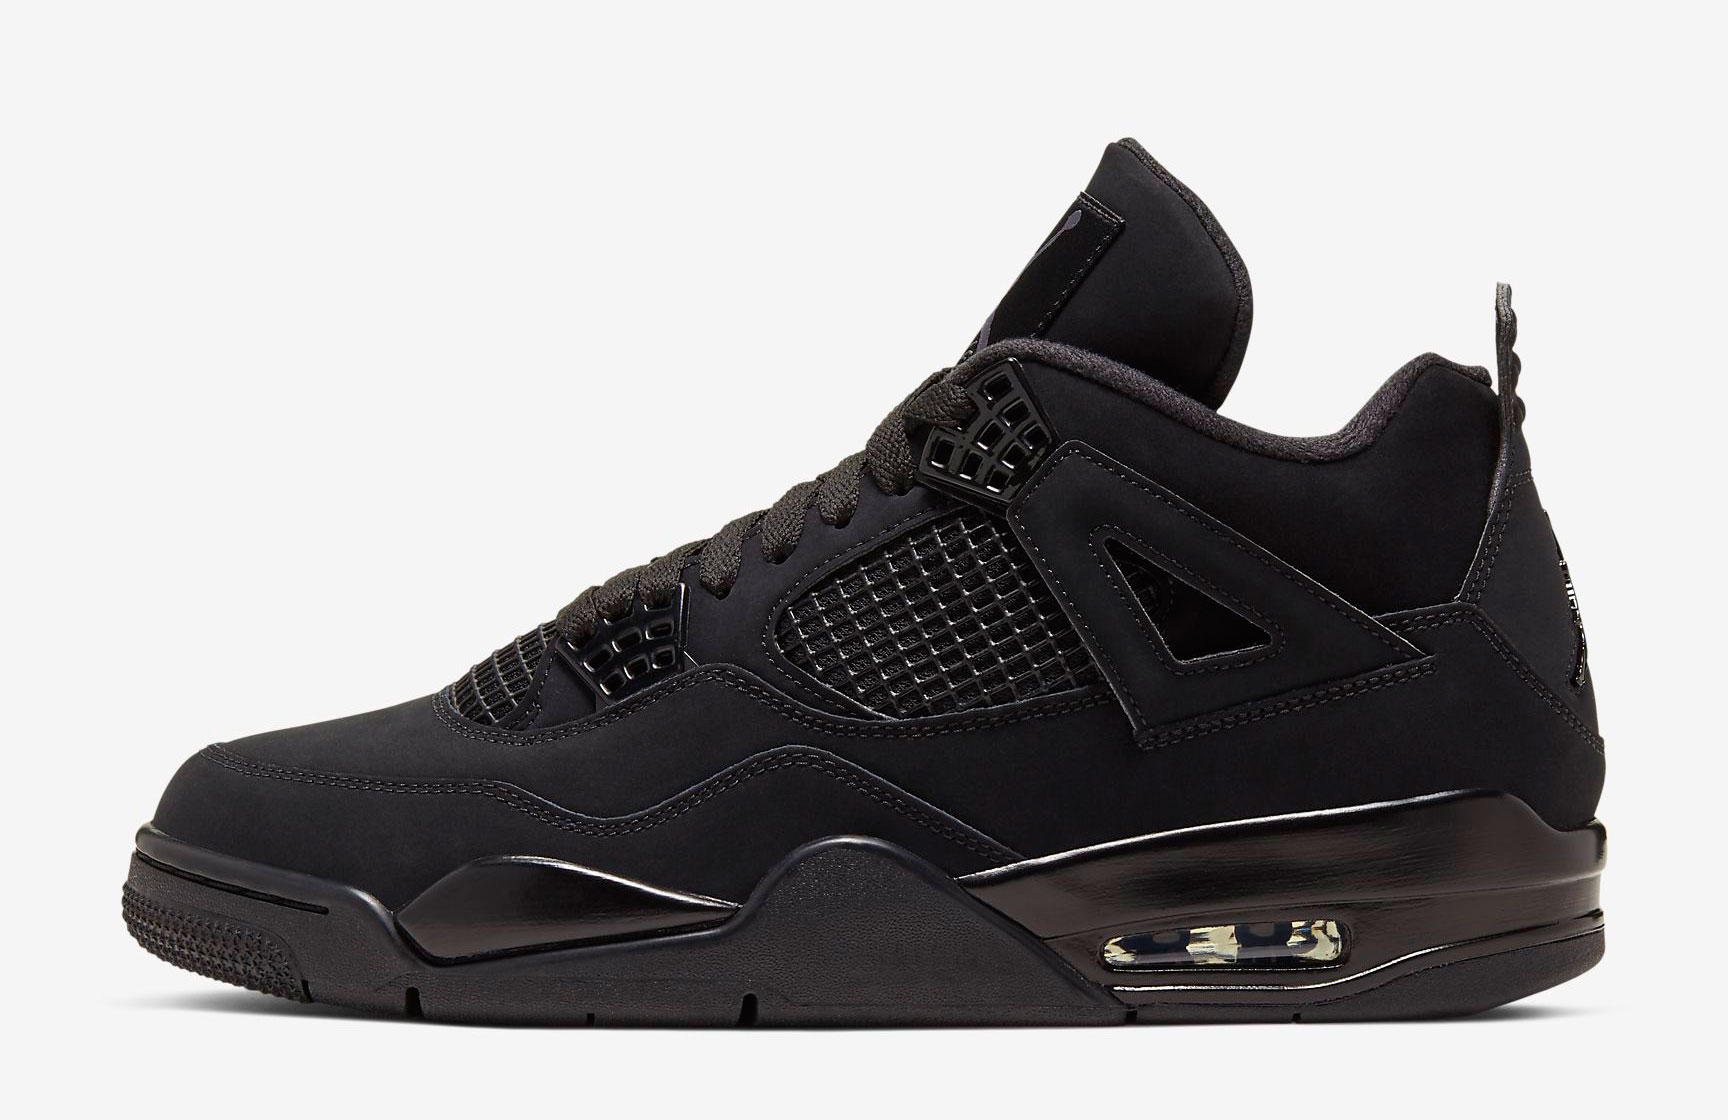 air-jordan-4-black-cat-2020-release-date